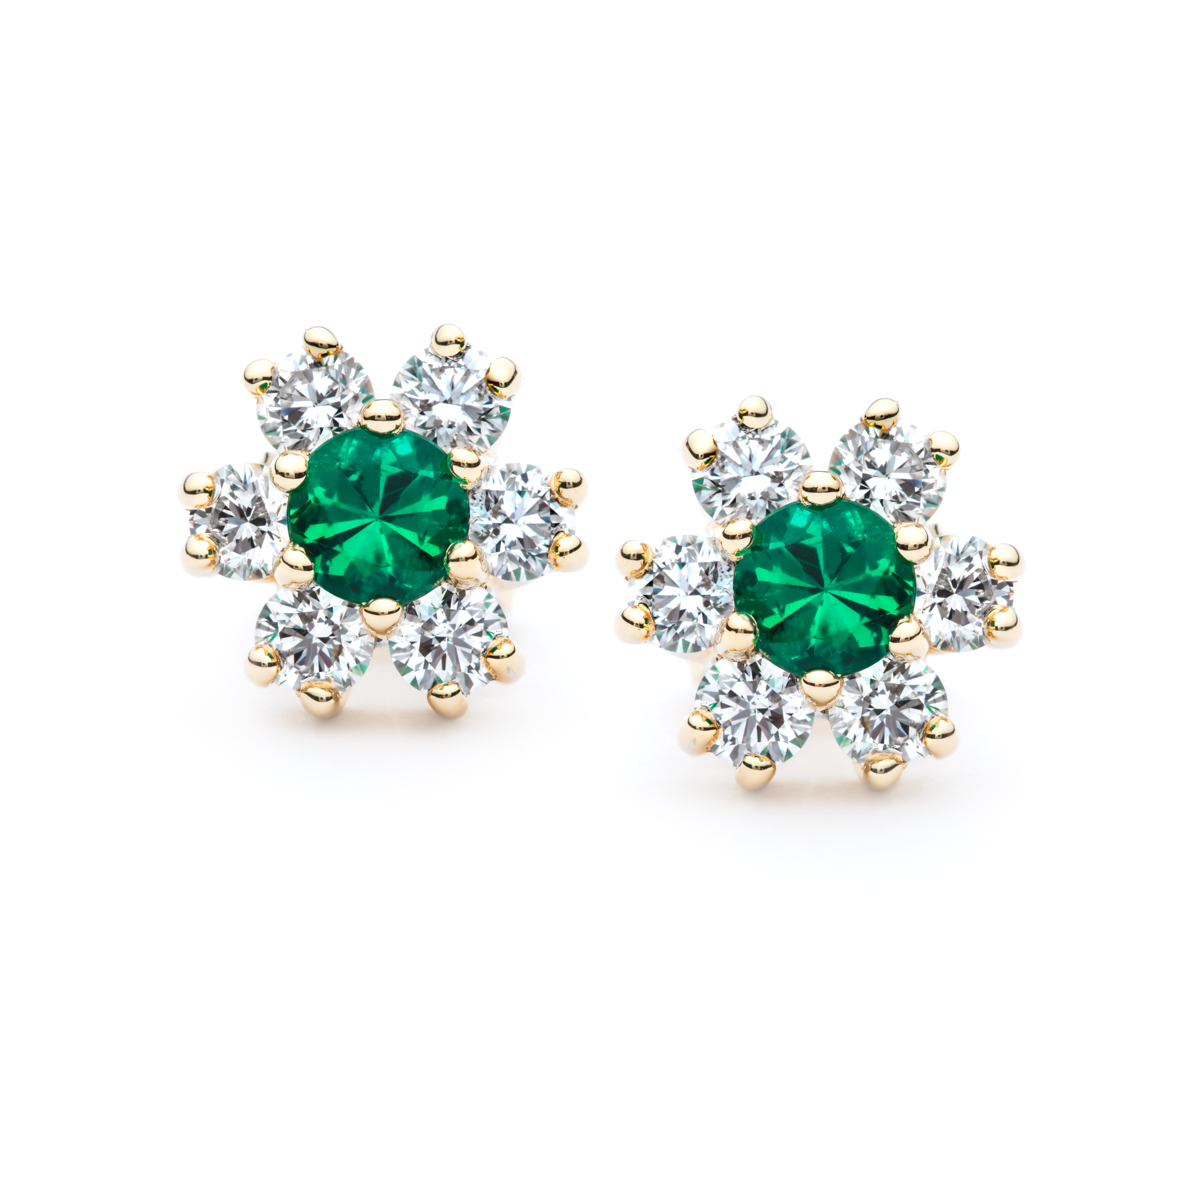 Emerald And Diamond Snowflake Earrings Jm Edwards Jewelry